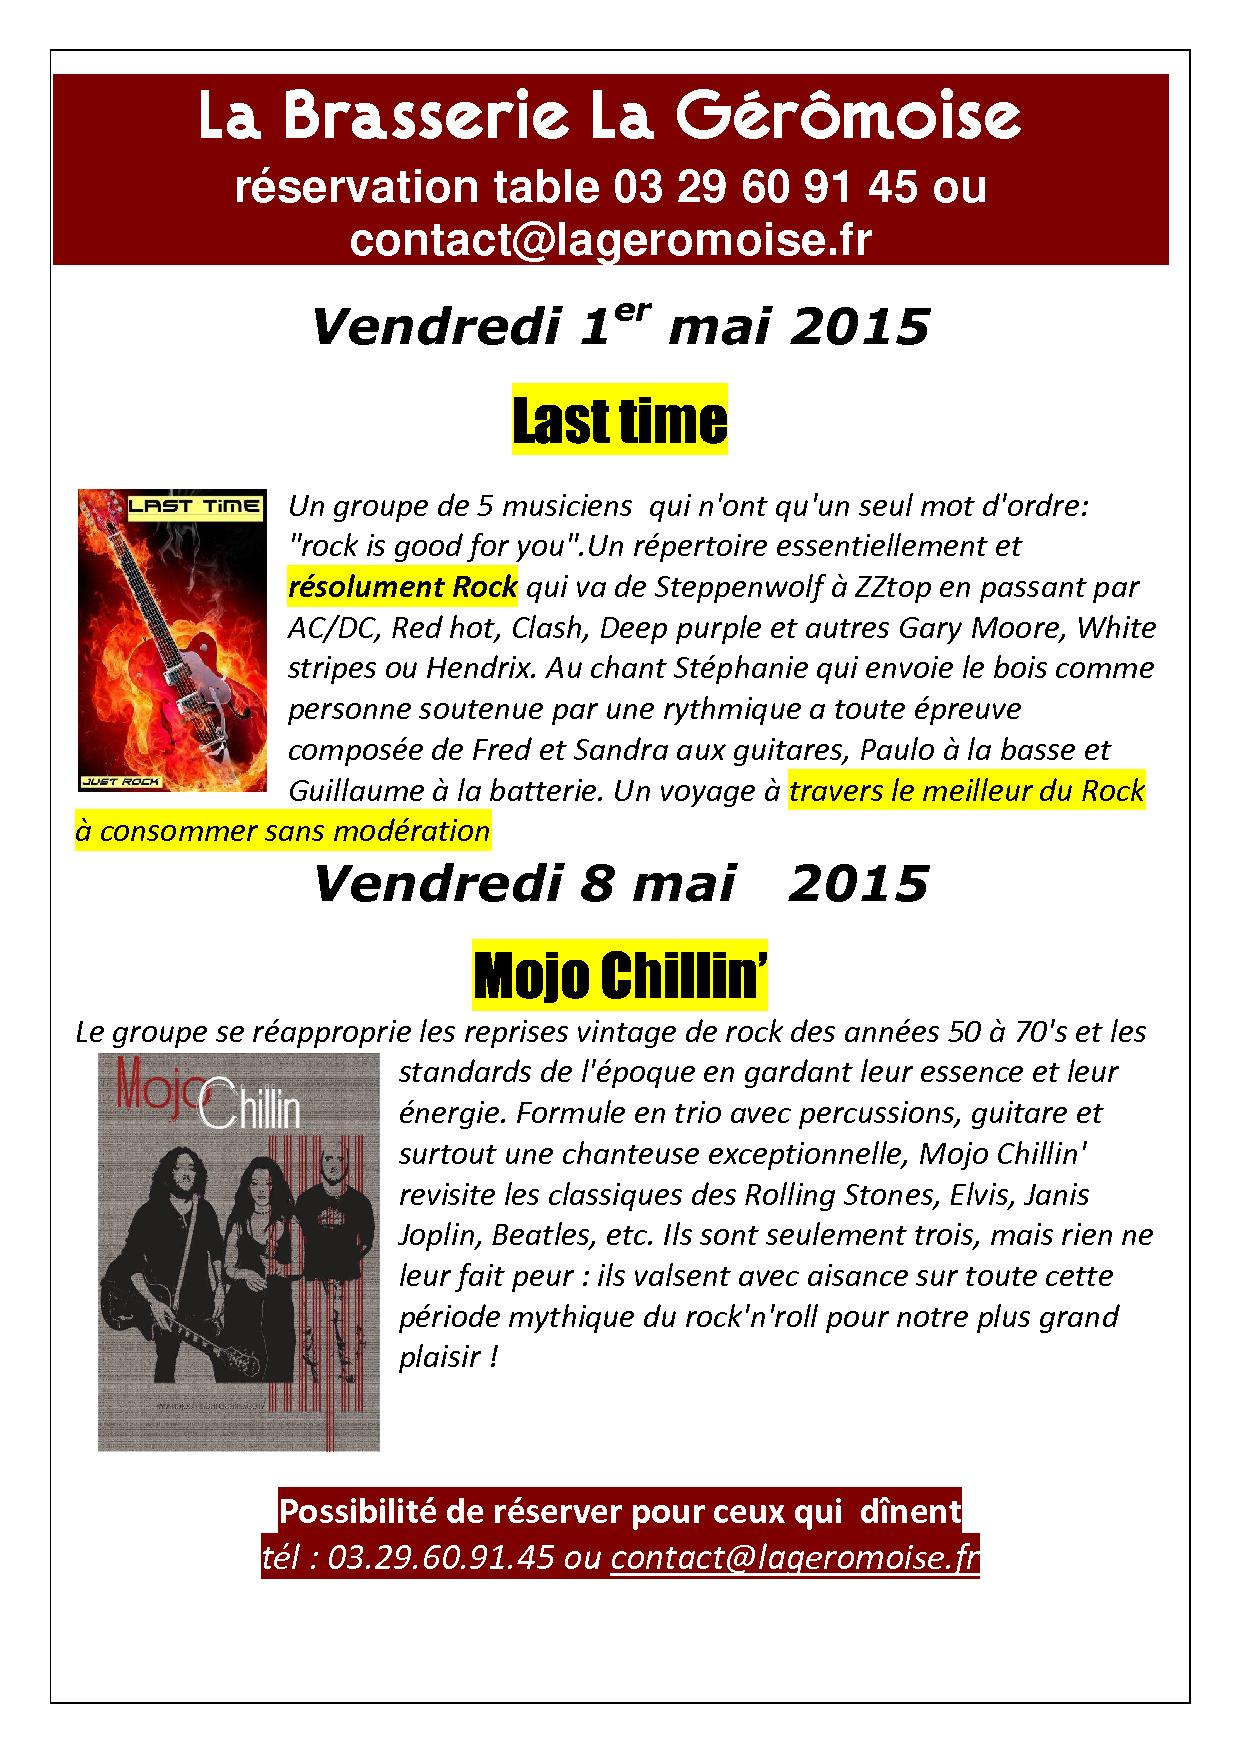 concerts-vacances-avril-mai-2015-2.jpg